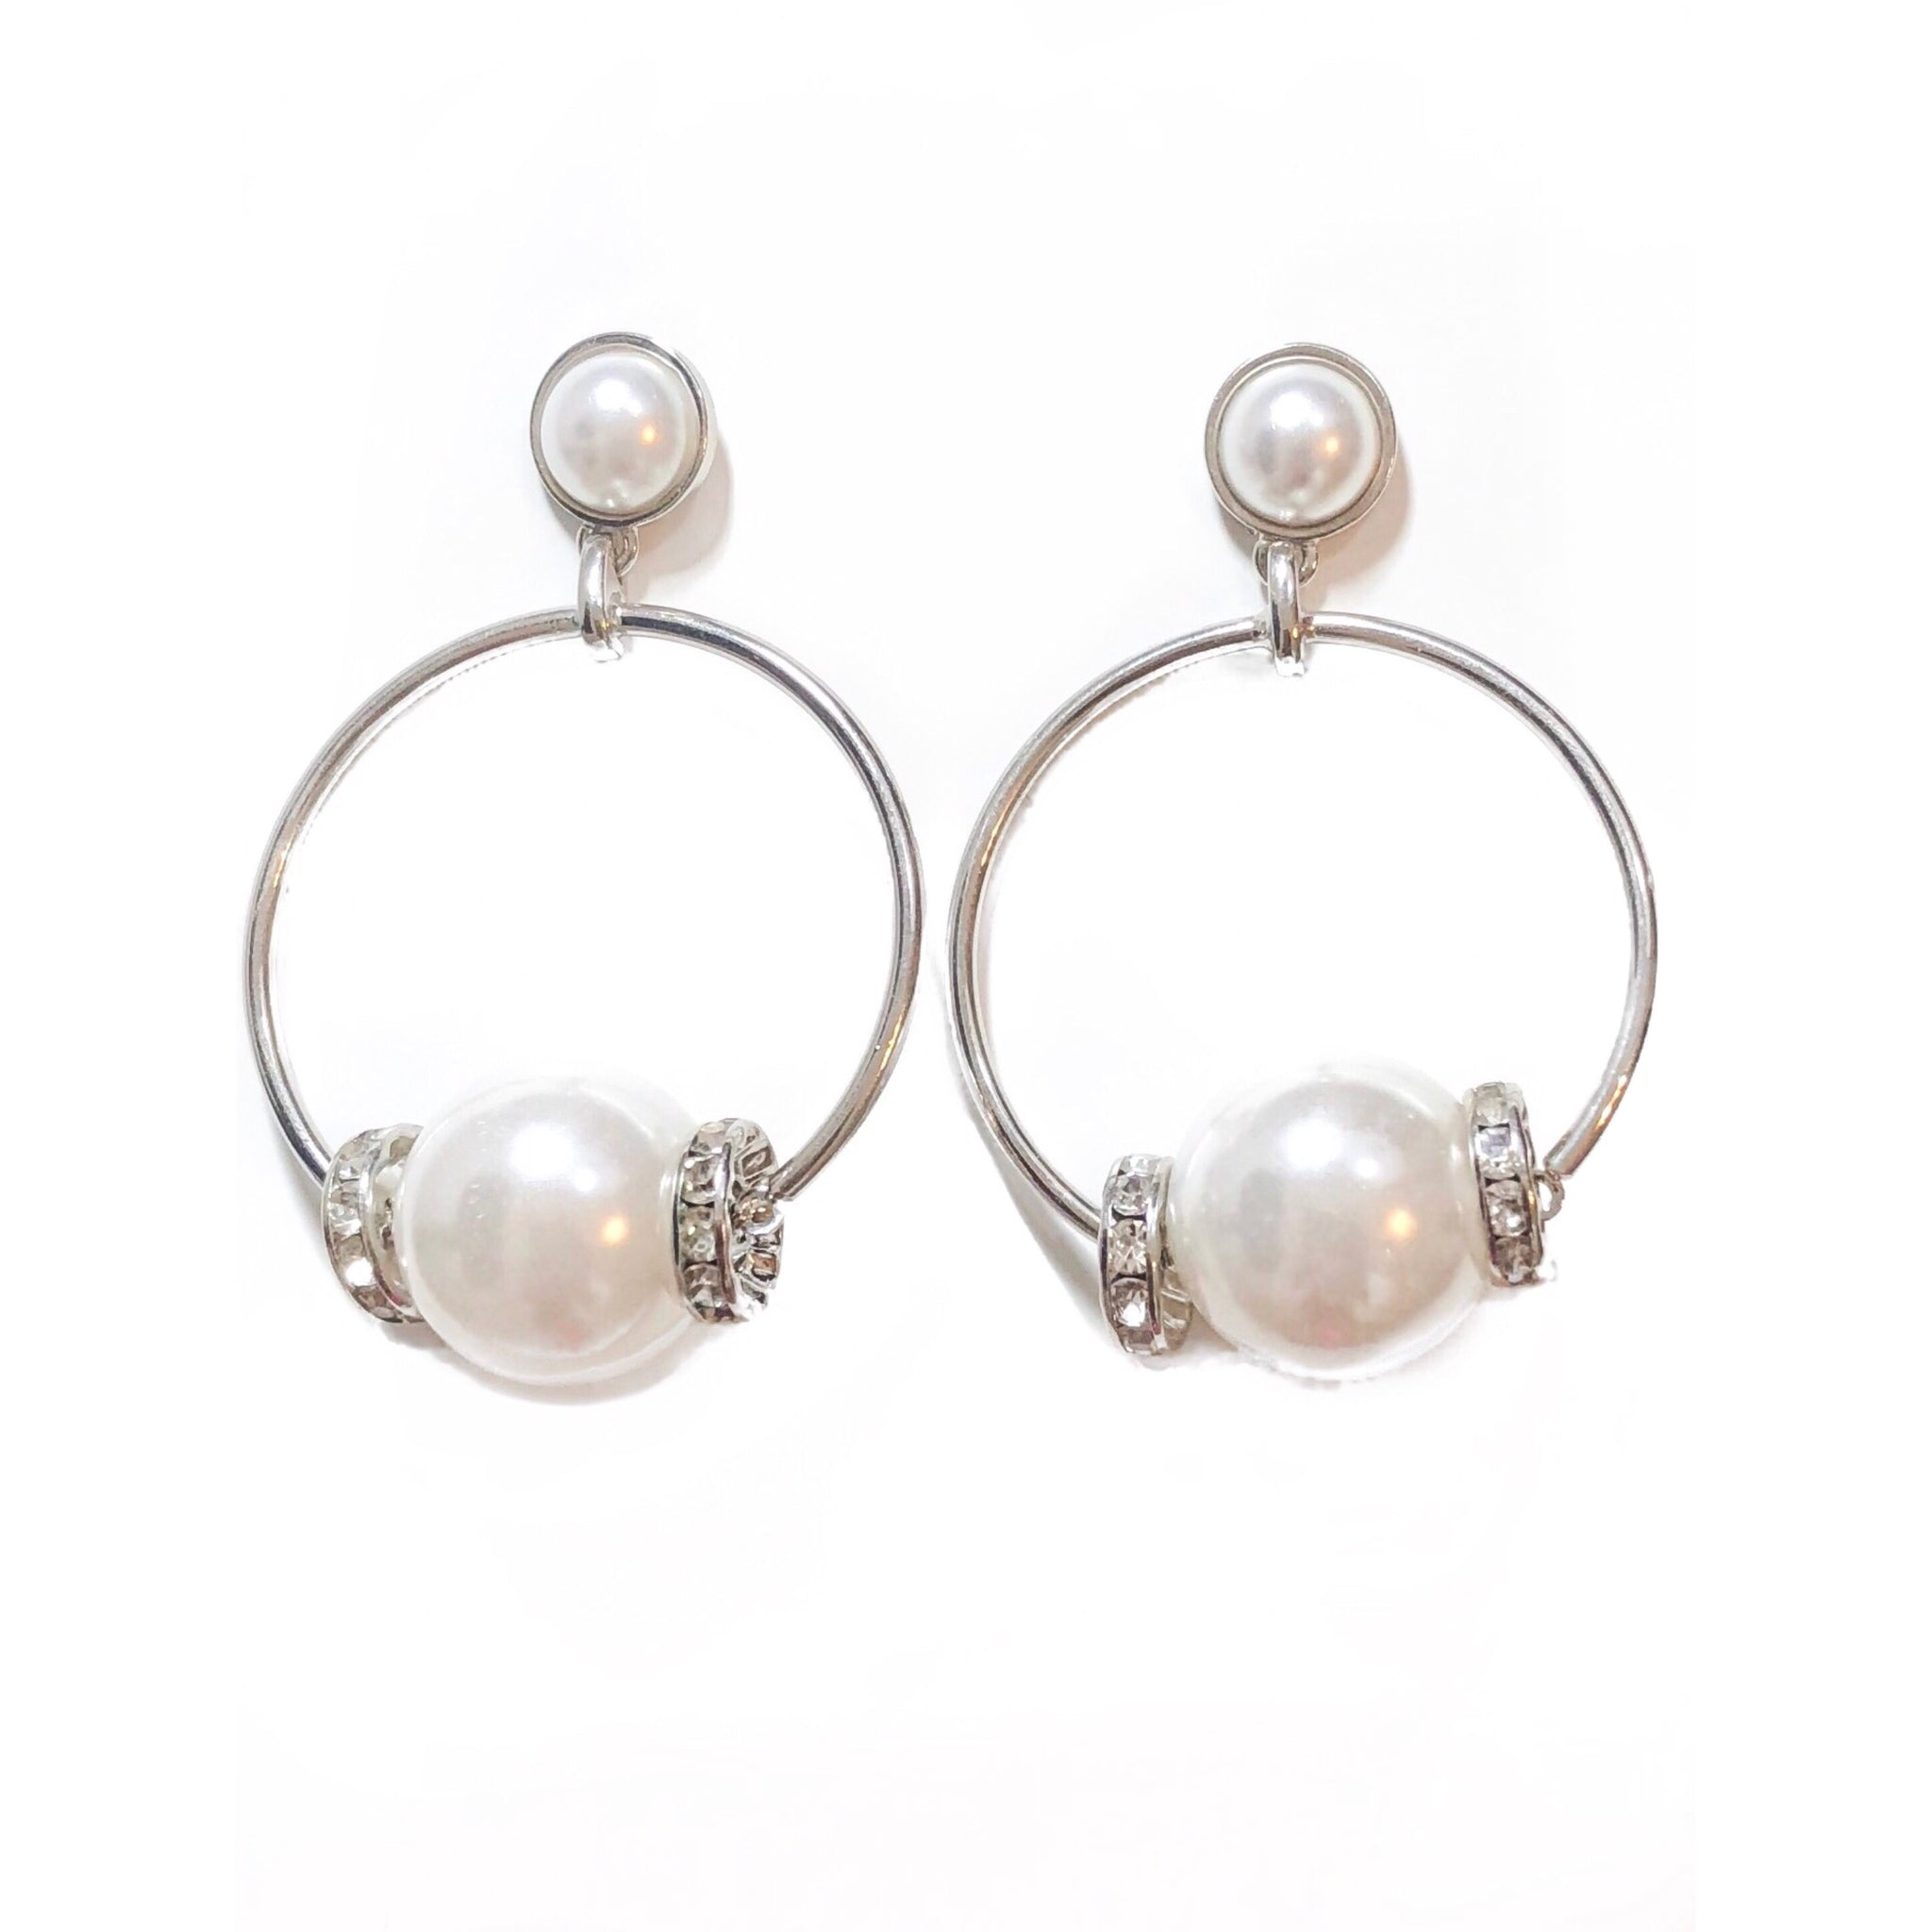 Patty Pearl Earrings